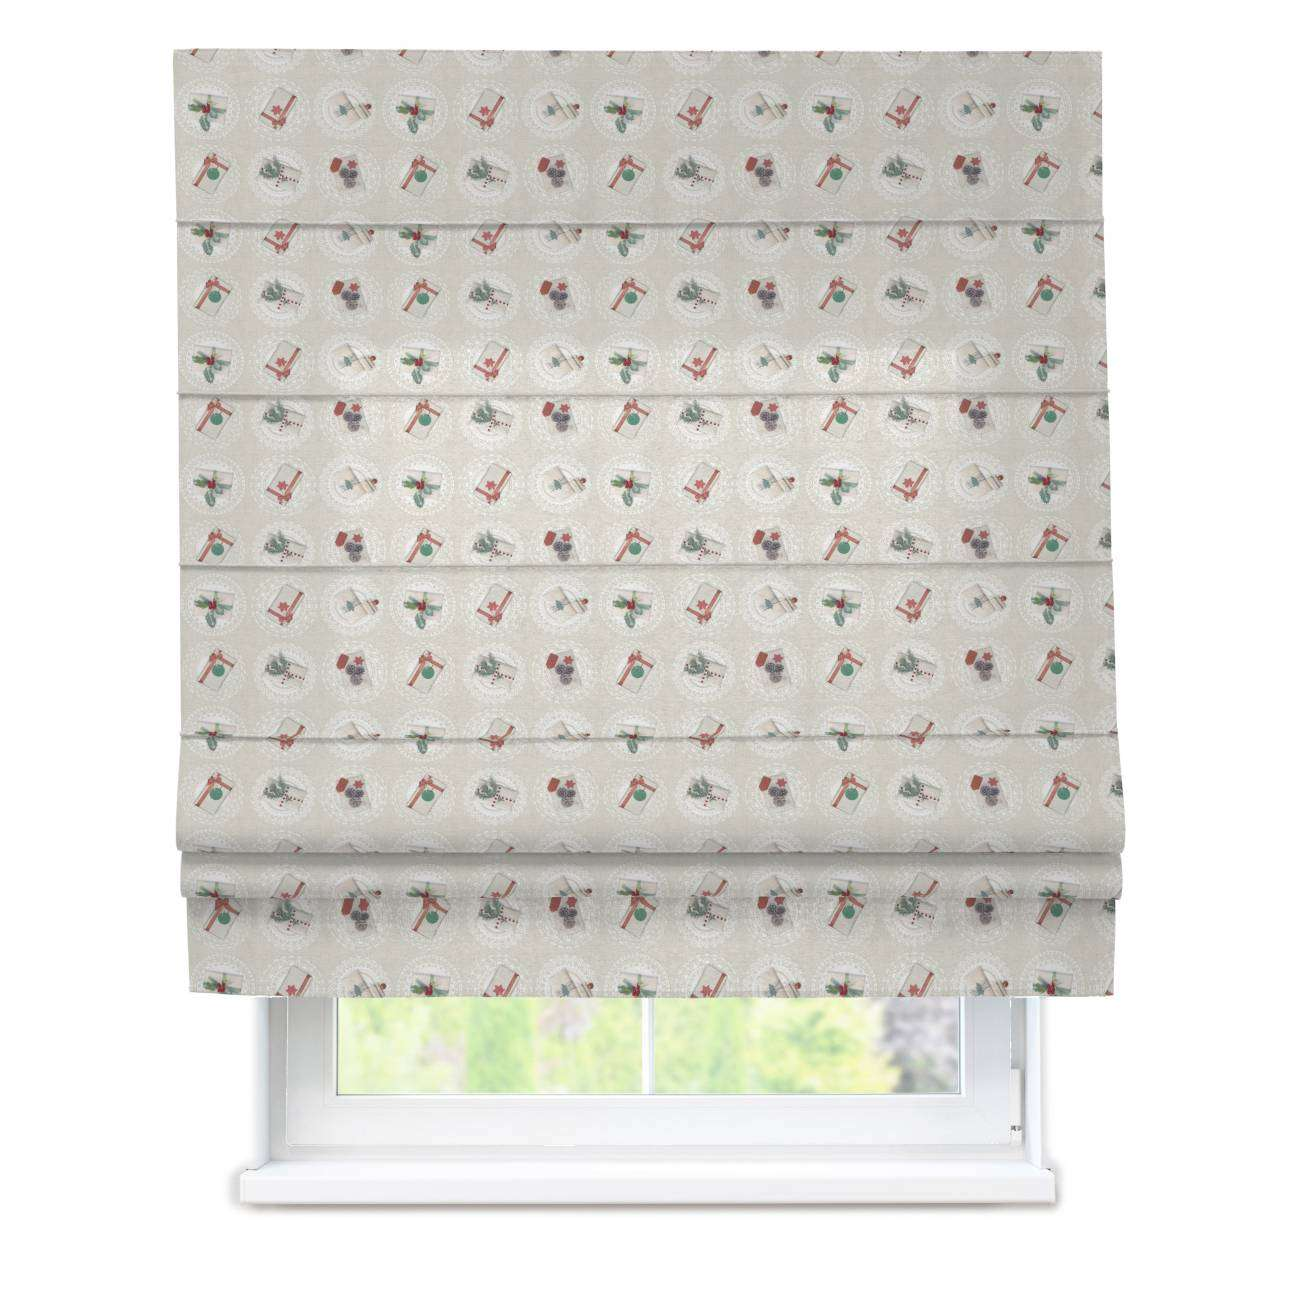 Padva roman blind  80 x 170 cm (31.5 x 67 inch) in collection Christmas , fabric: 629-30